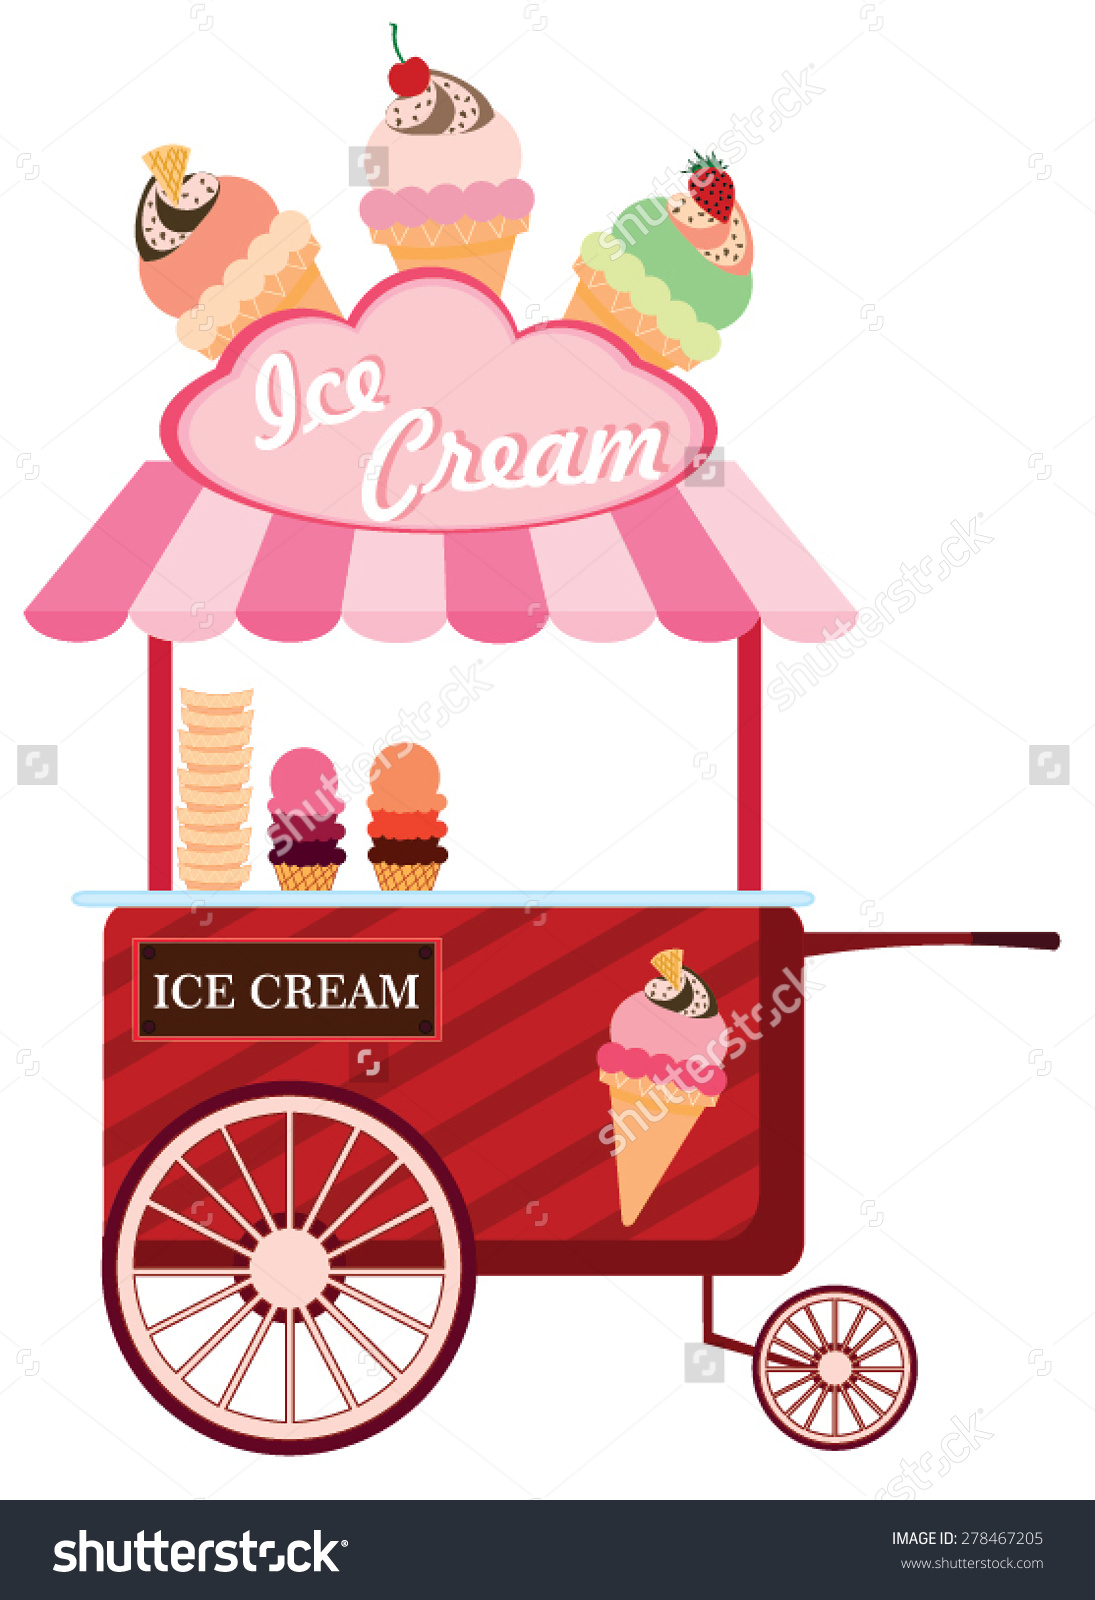 Ice cream cart clipart - Clipground